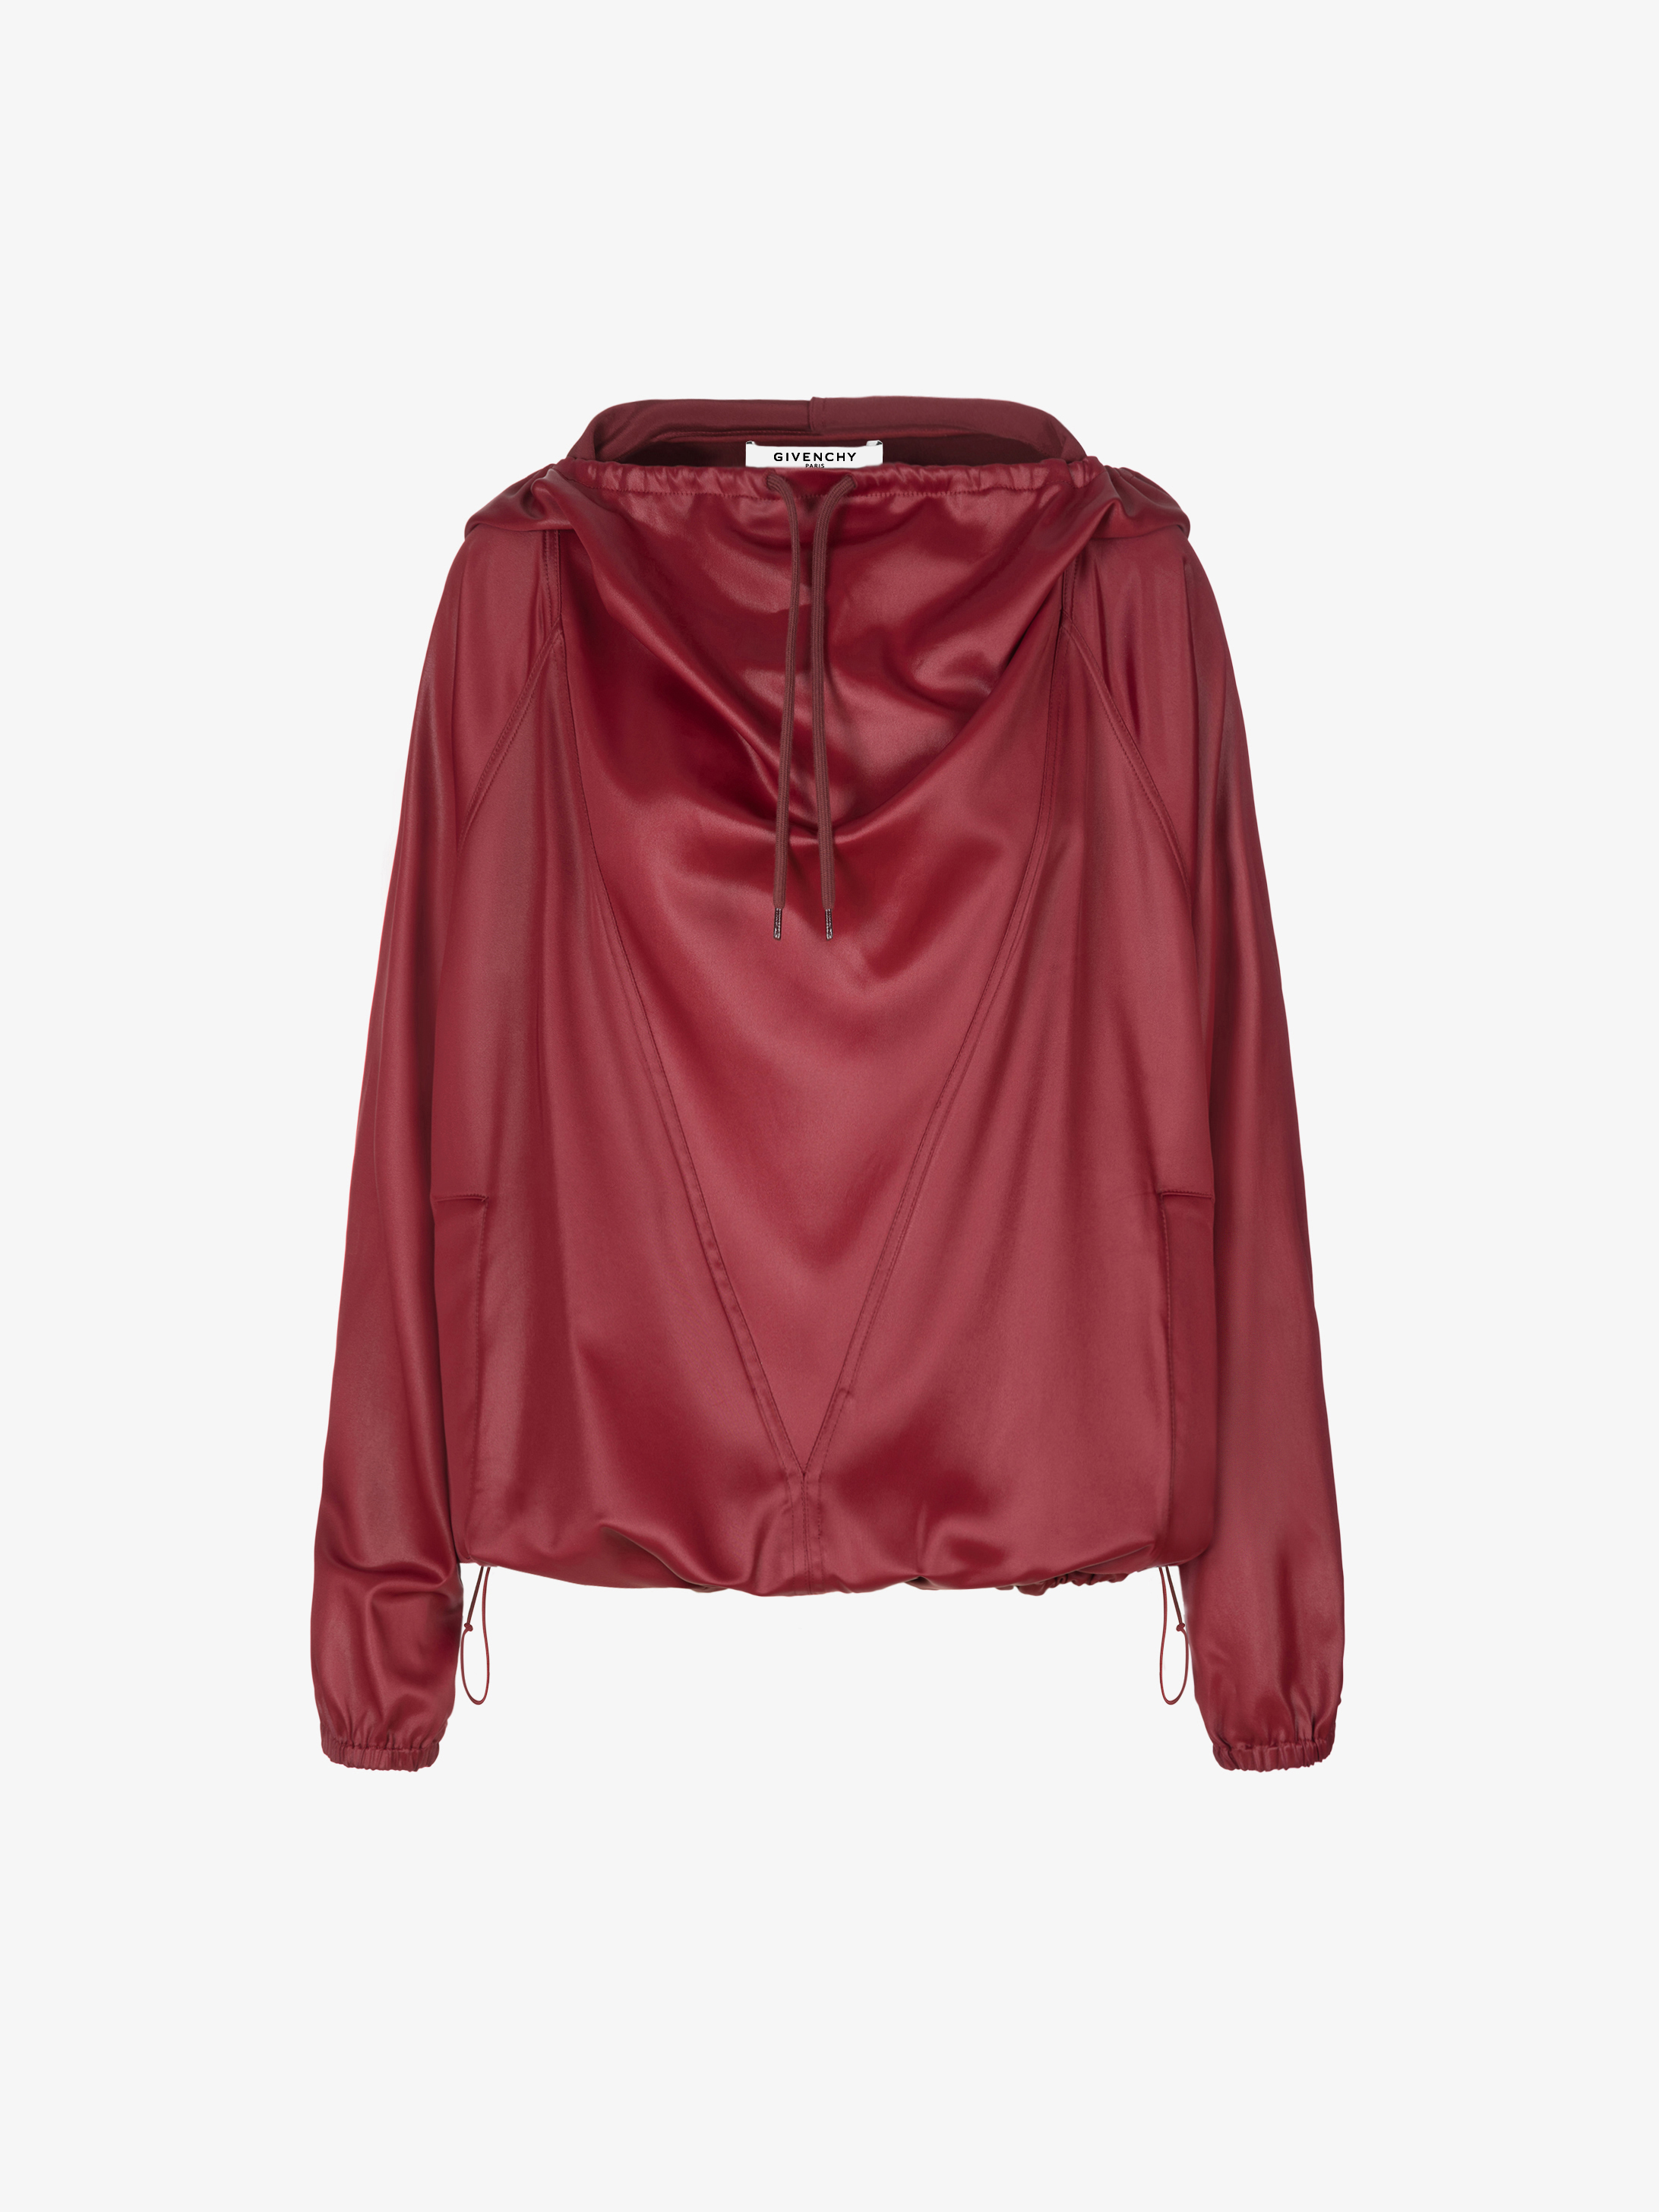 Hoodie in shiny satin